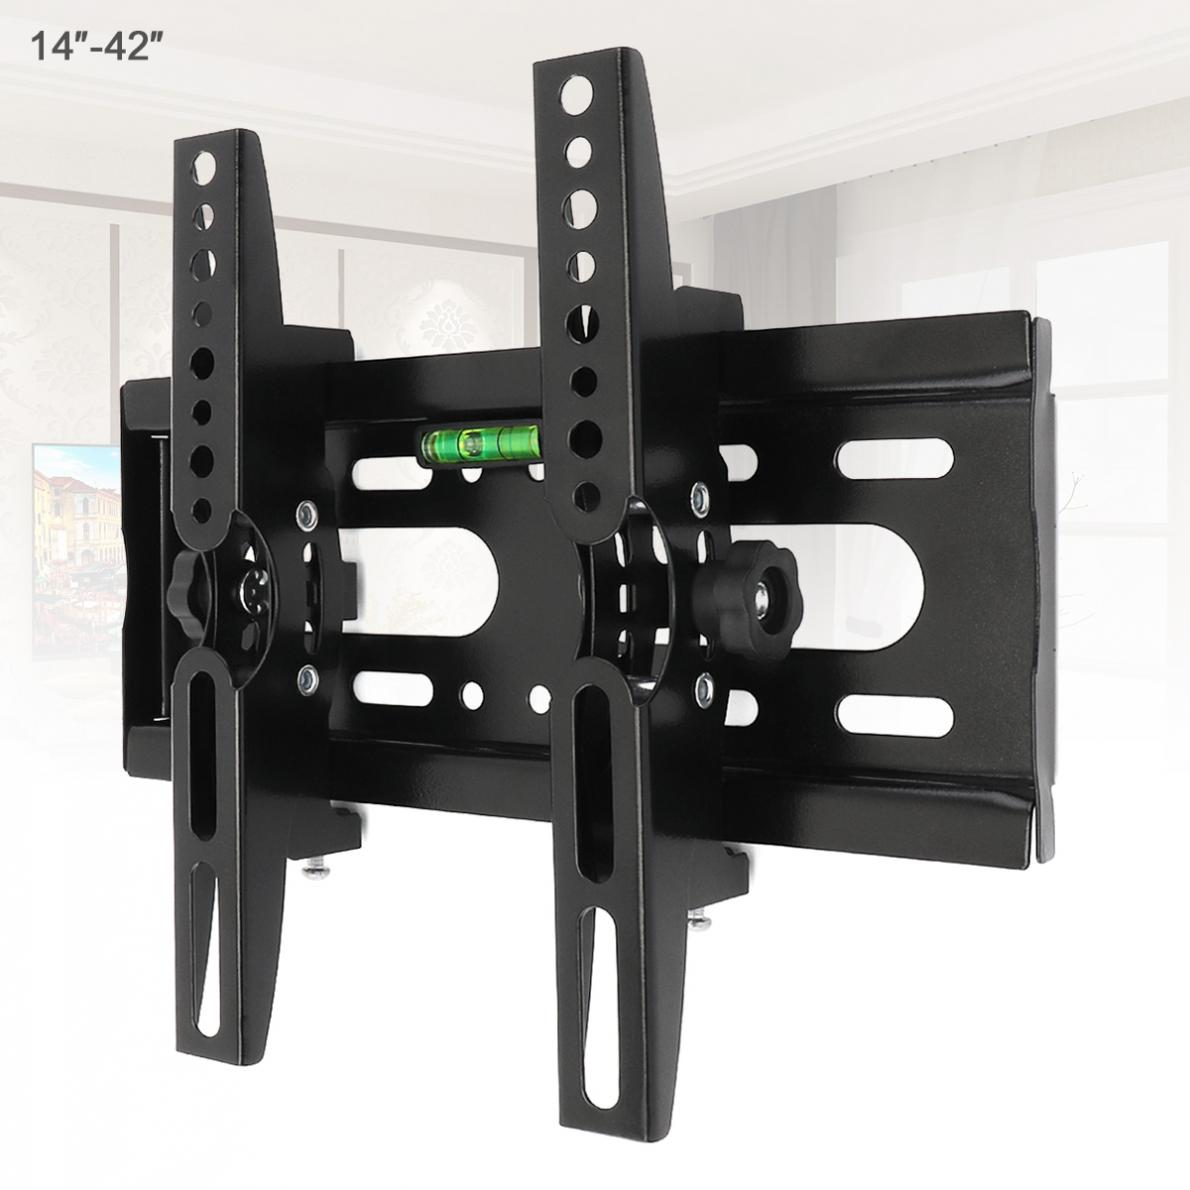 Universal 25KG Adjustable TV Wall Mount Bracket Flat Panel TV Frame Support 15 Degrees Tilt with Level for 14 - 42 Inch LCD LED